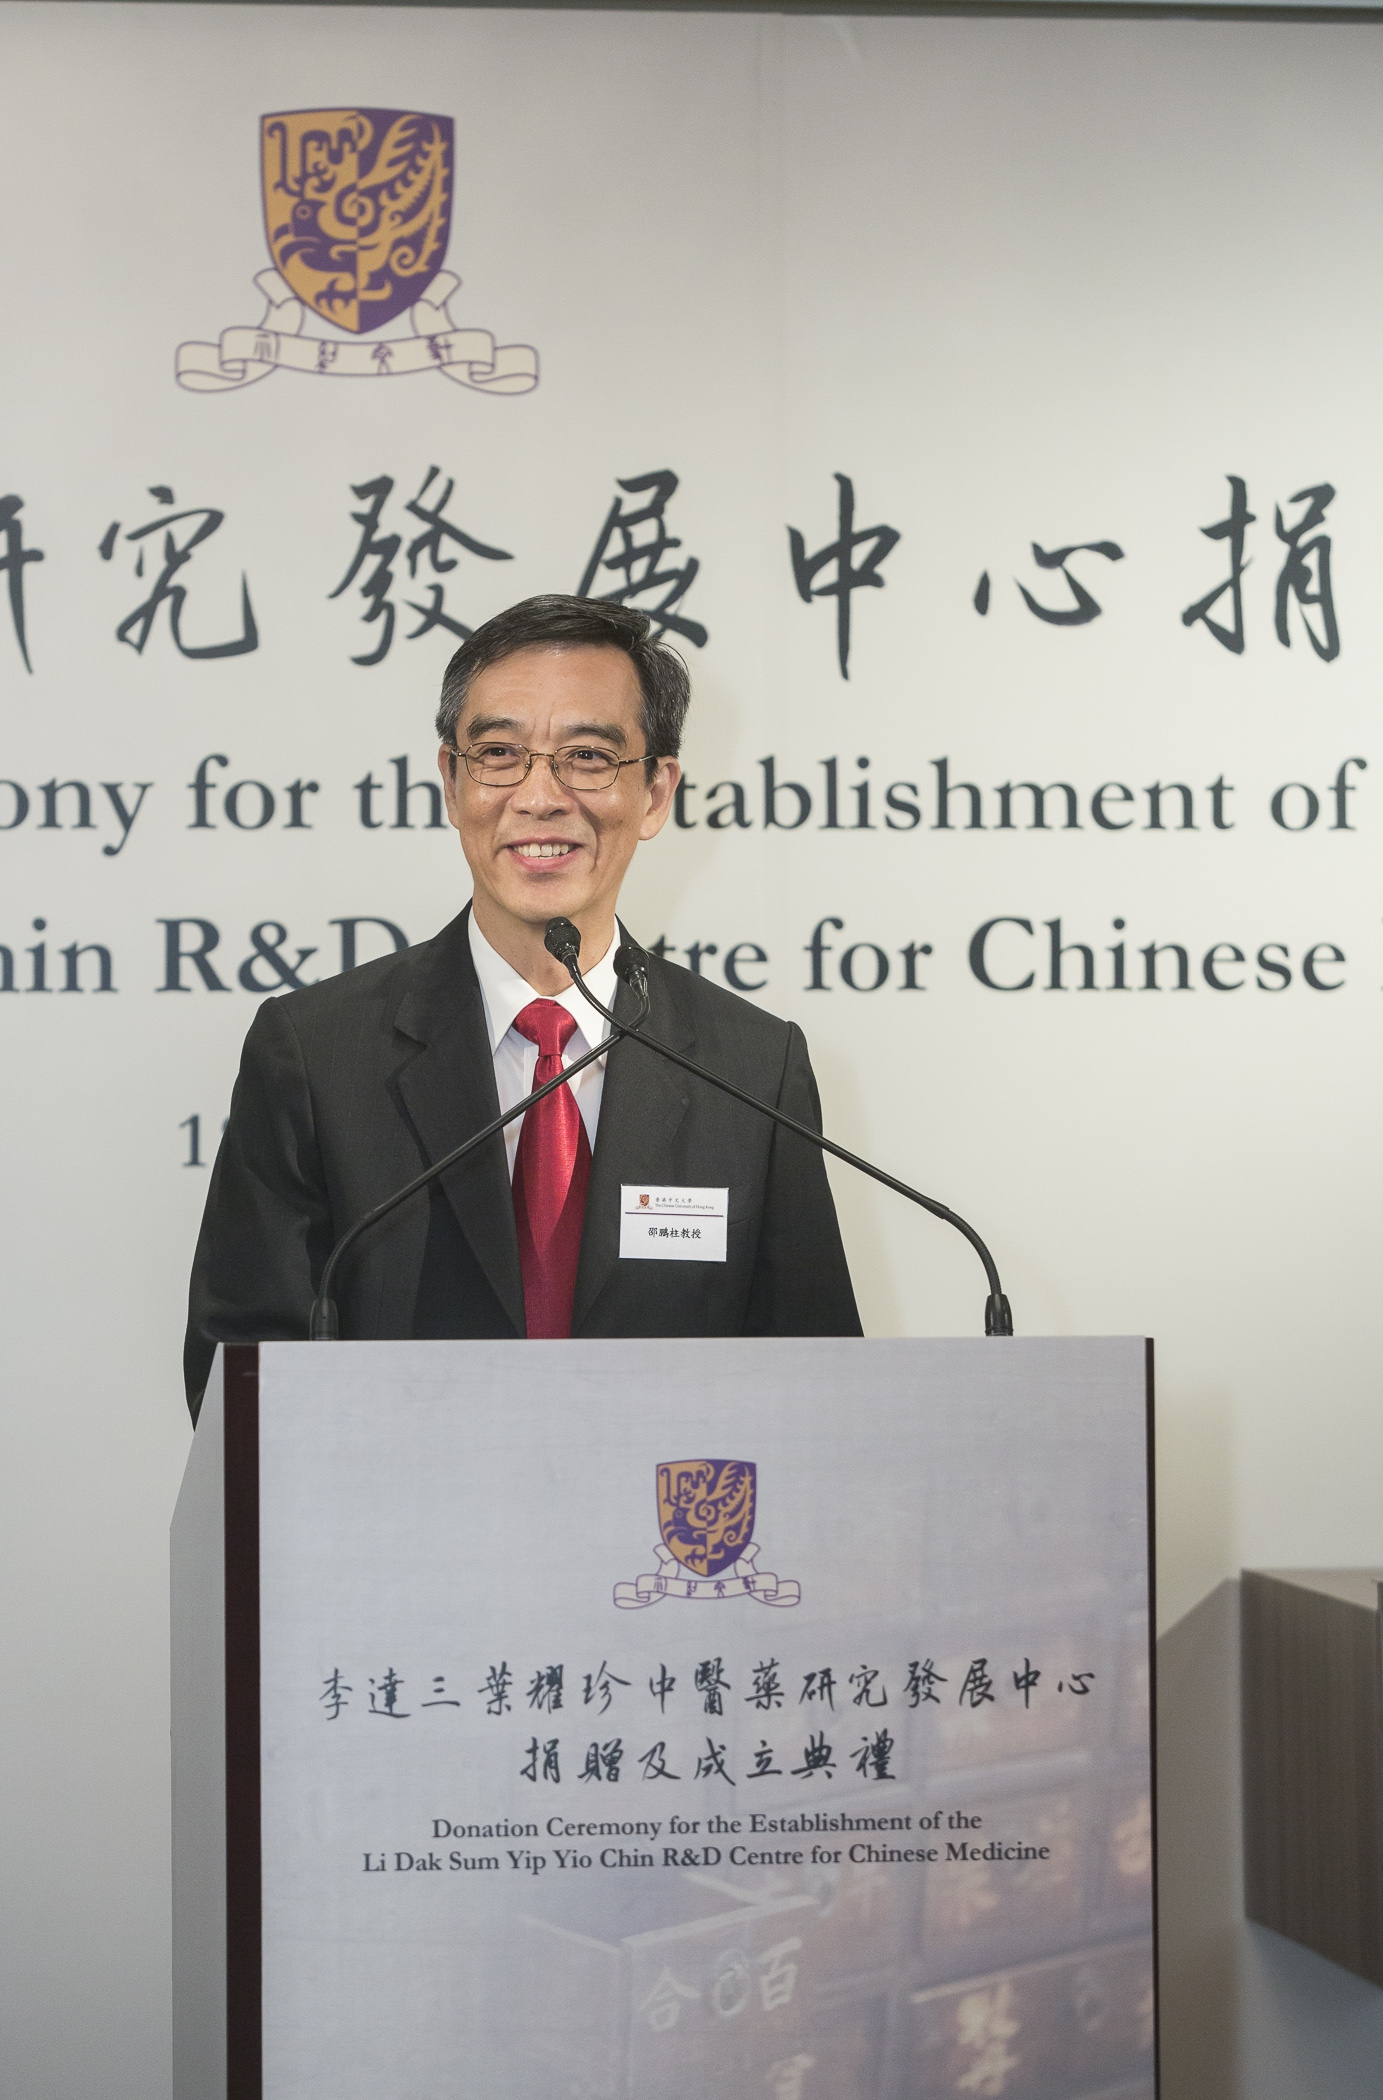 Prof. Shaw Pang Chui introduces the key development directions of the Li Dak Sum Yip Yio Chin R&D Centre for Chinese Medicine.